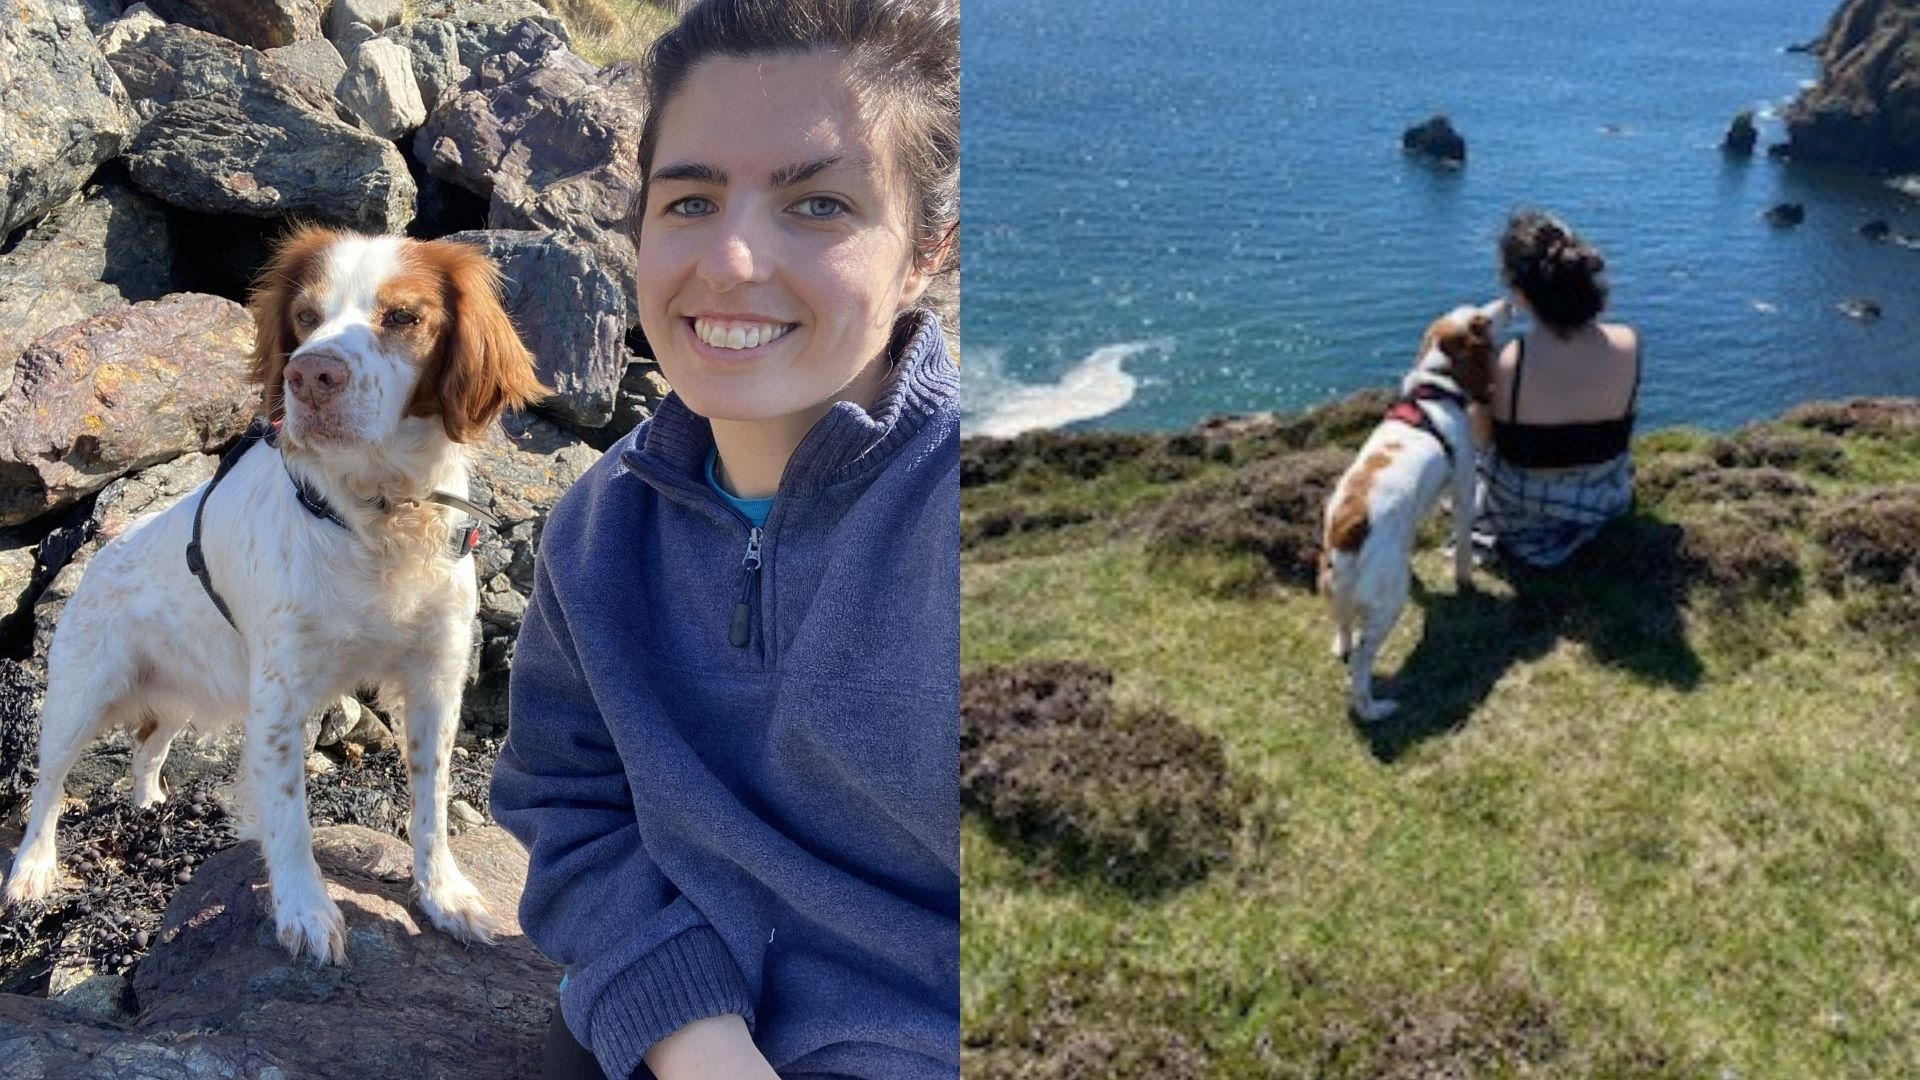 Left: Sophie, 20s, outdoor sitting on some rocks on a hill with her dog. She's wearing a blue fleece and has her hair tied up. Right: Far away shot of Sophie and her dog, sitting at the edge of a cliff, looking away from the camera towards the sea.